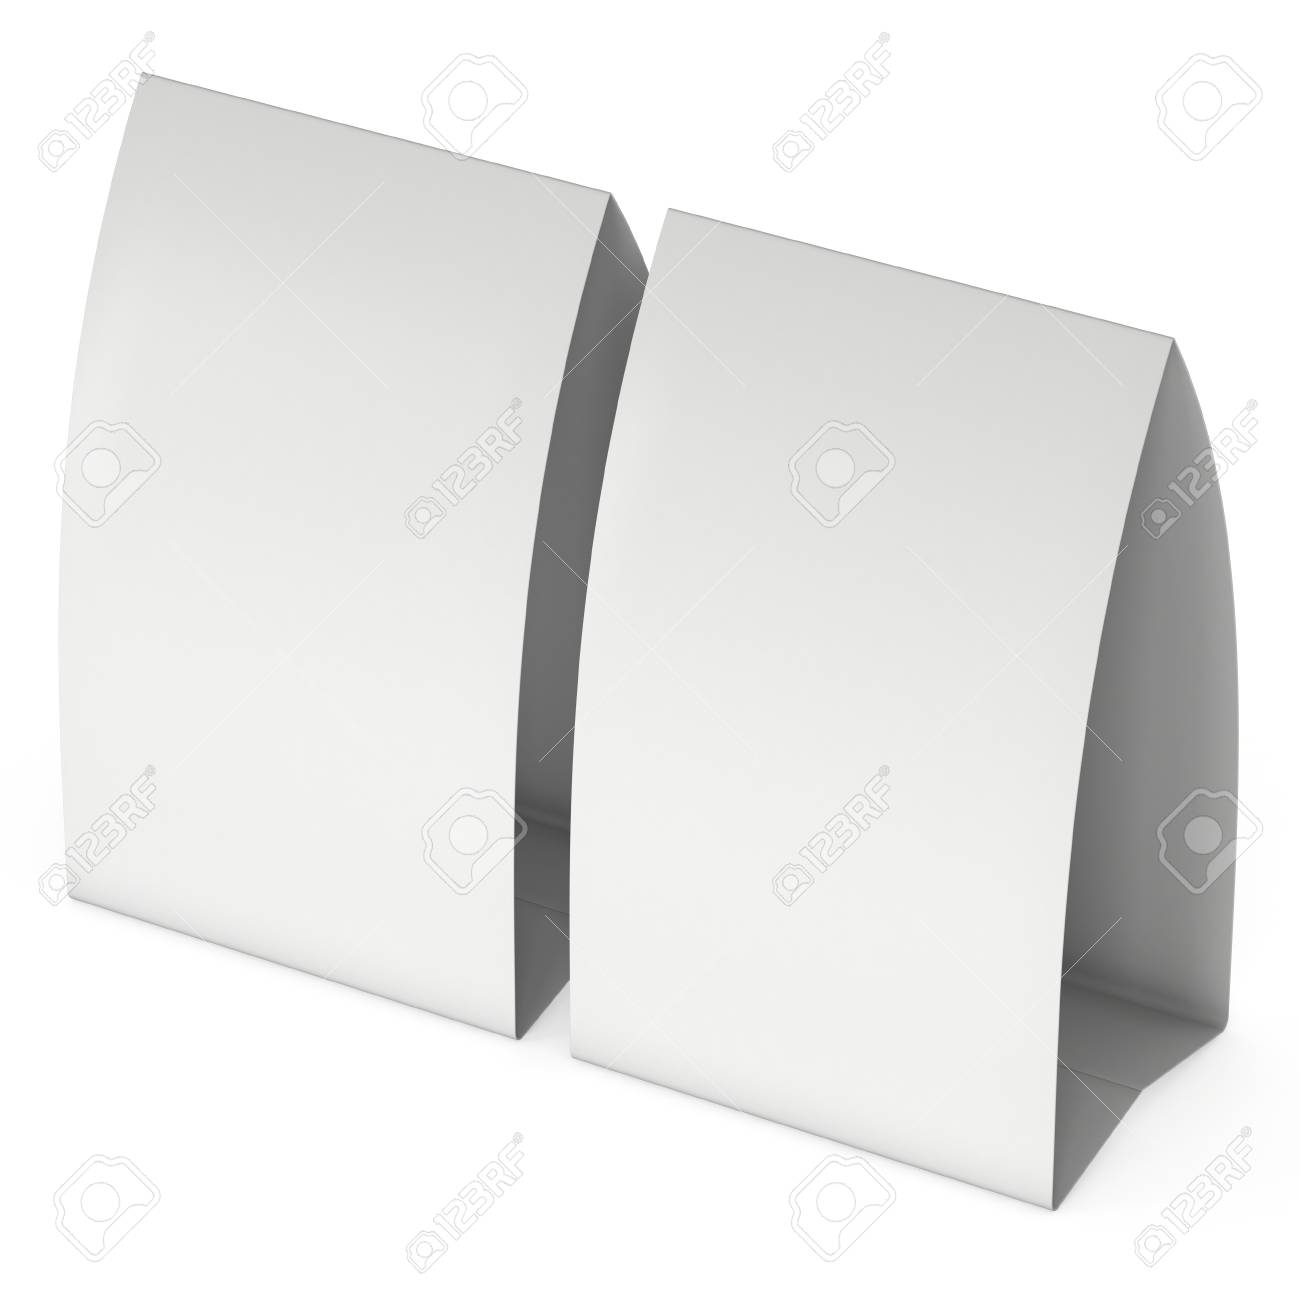 graphic regarding Printable Tent Card identify Blank paper tent card. 3d render.